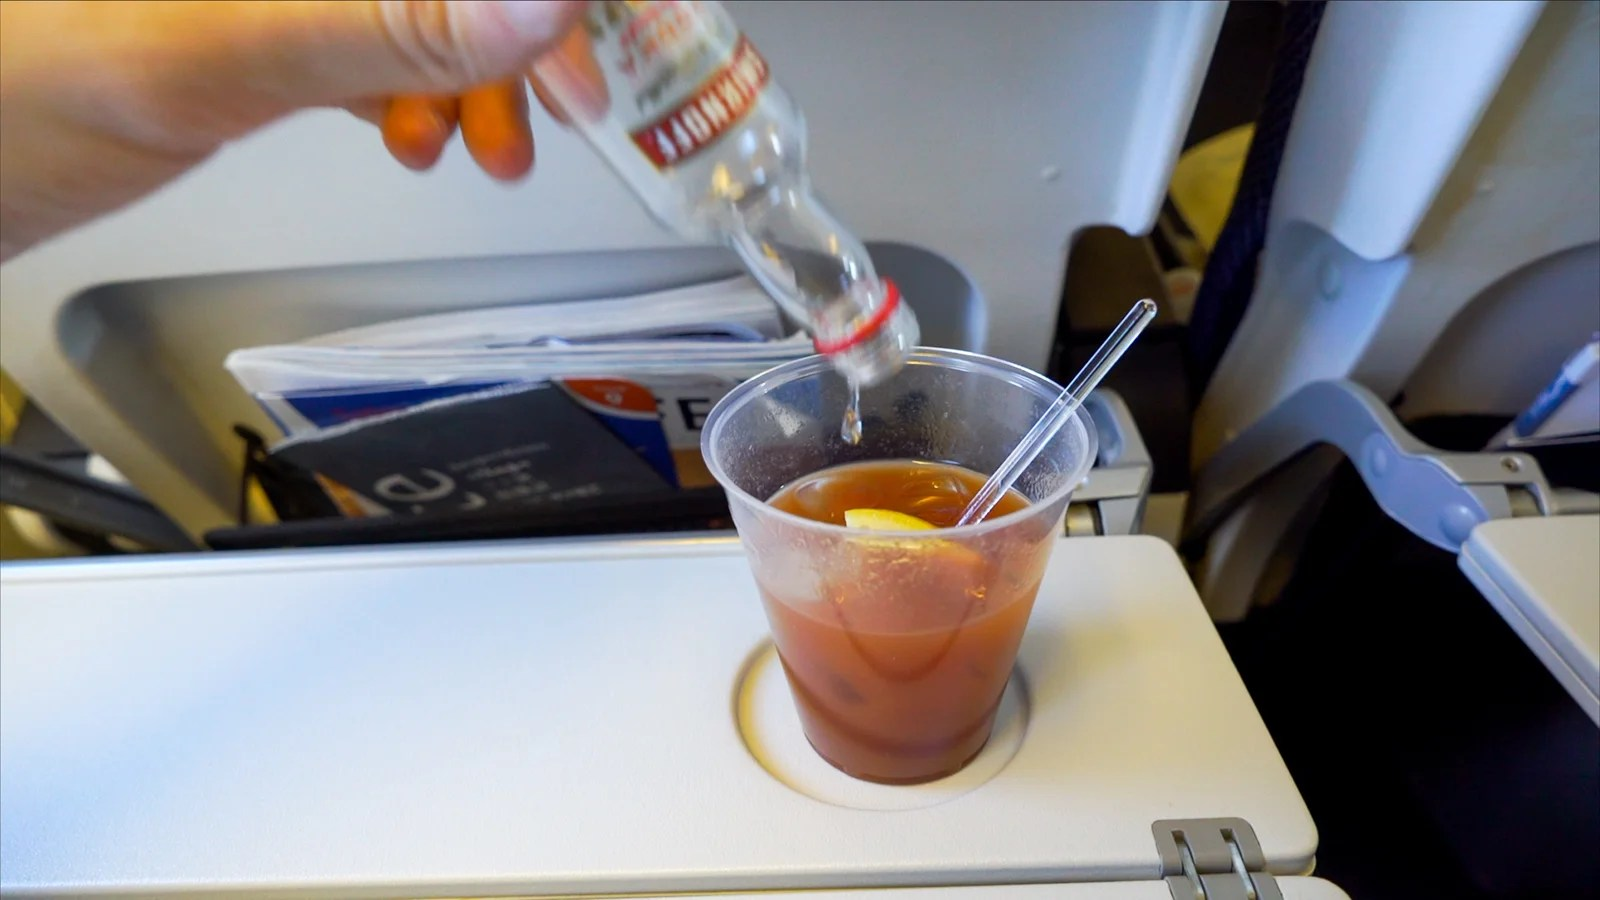 Why your credit card might not work for in-flight purchases in Europe